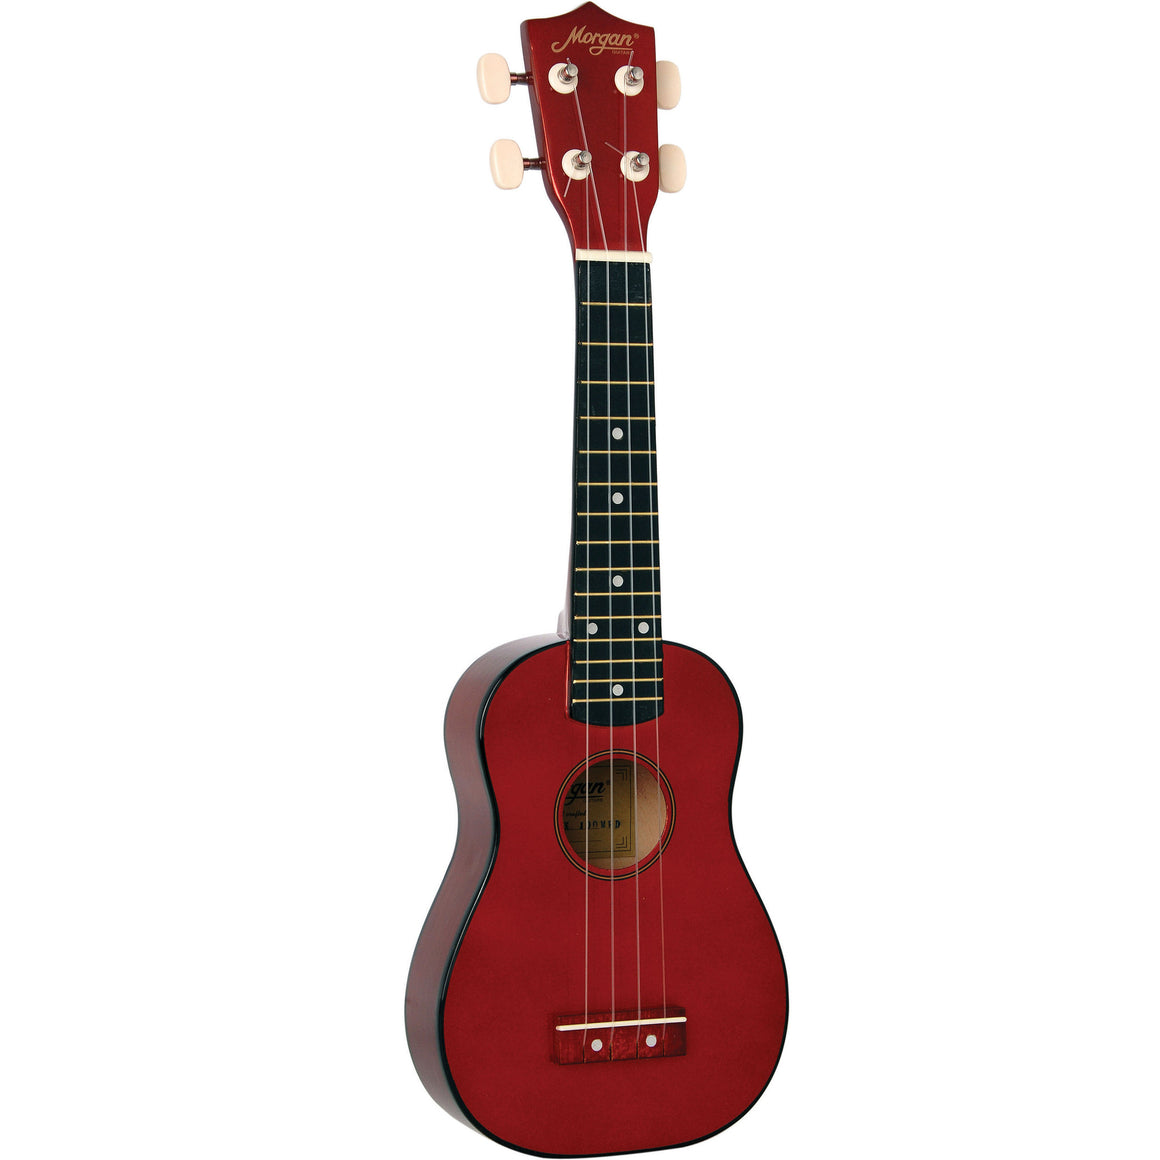 Morgan Concert Ukulele UK-320 MRD